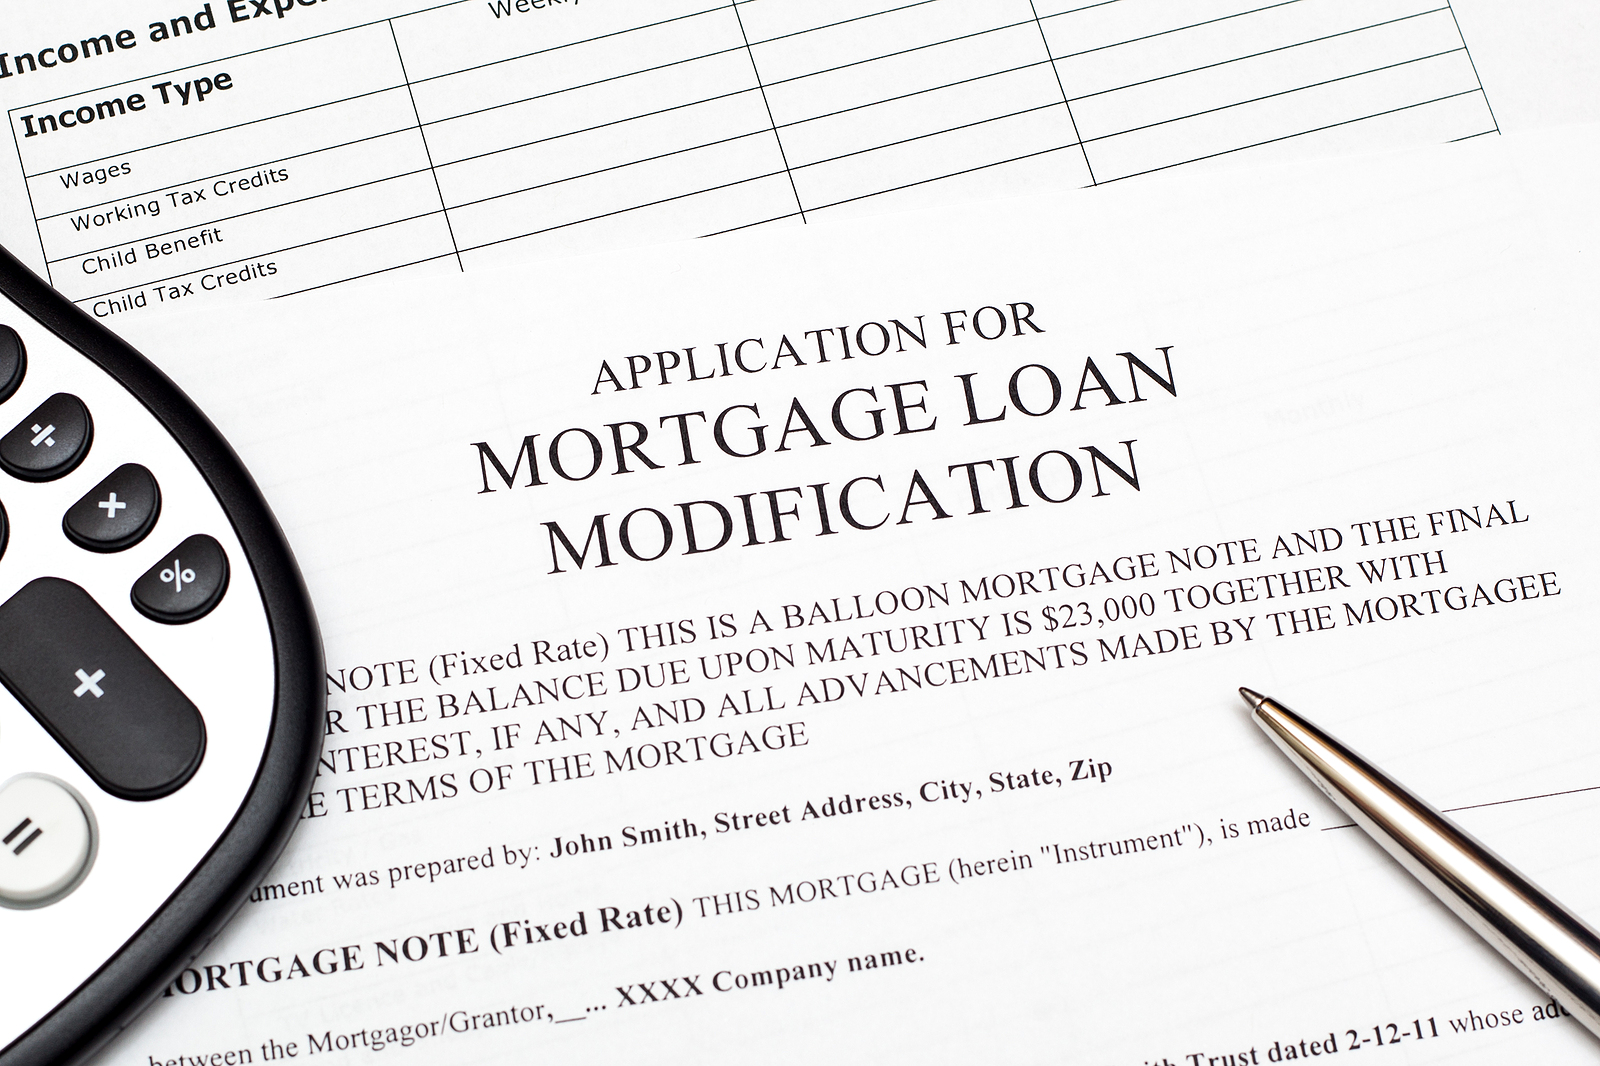 Mortgage Loan Modification & Bankruptcy - Considering Your Options